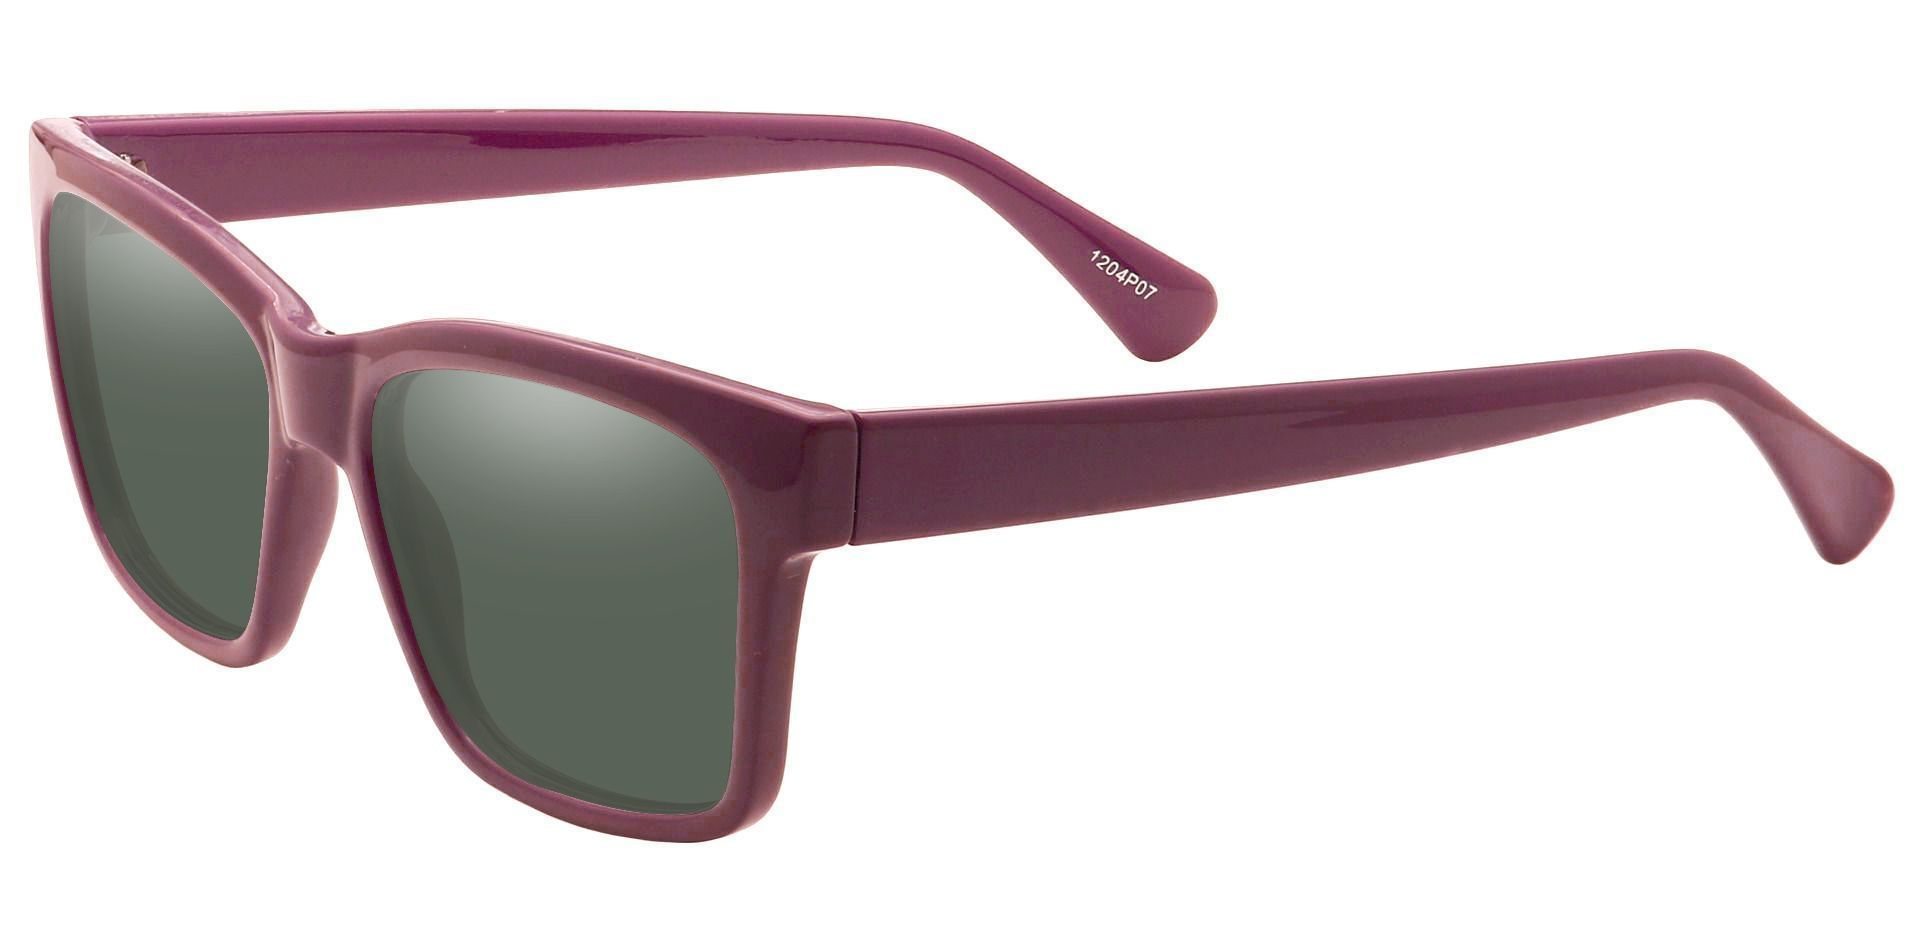 Brinley Square Reading Sunglasses - Purple Frame With Green Lenses